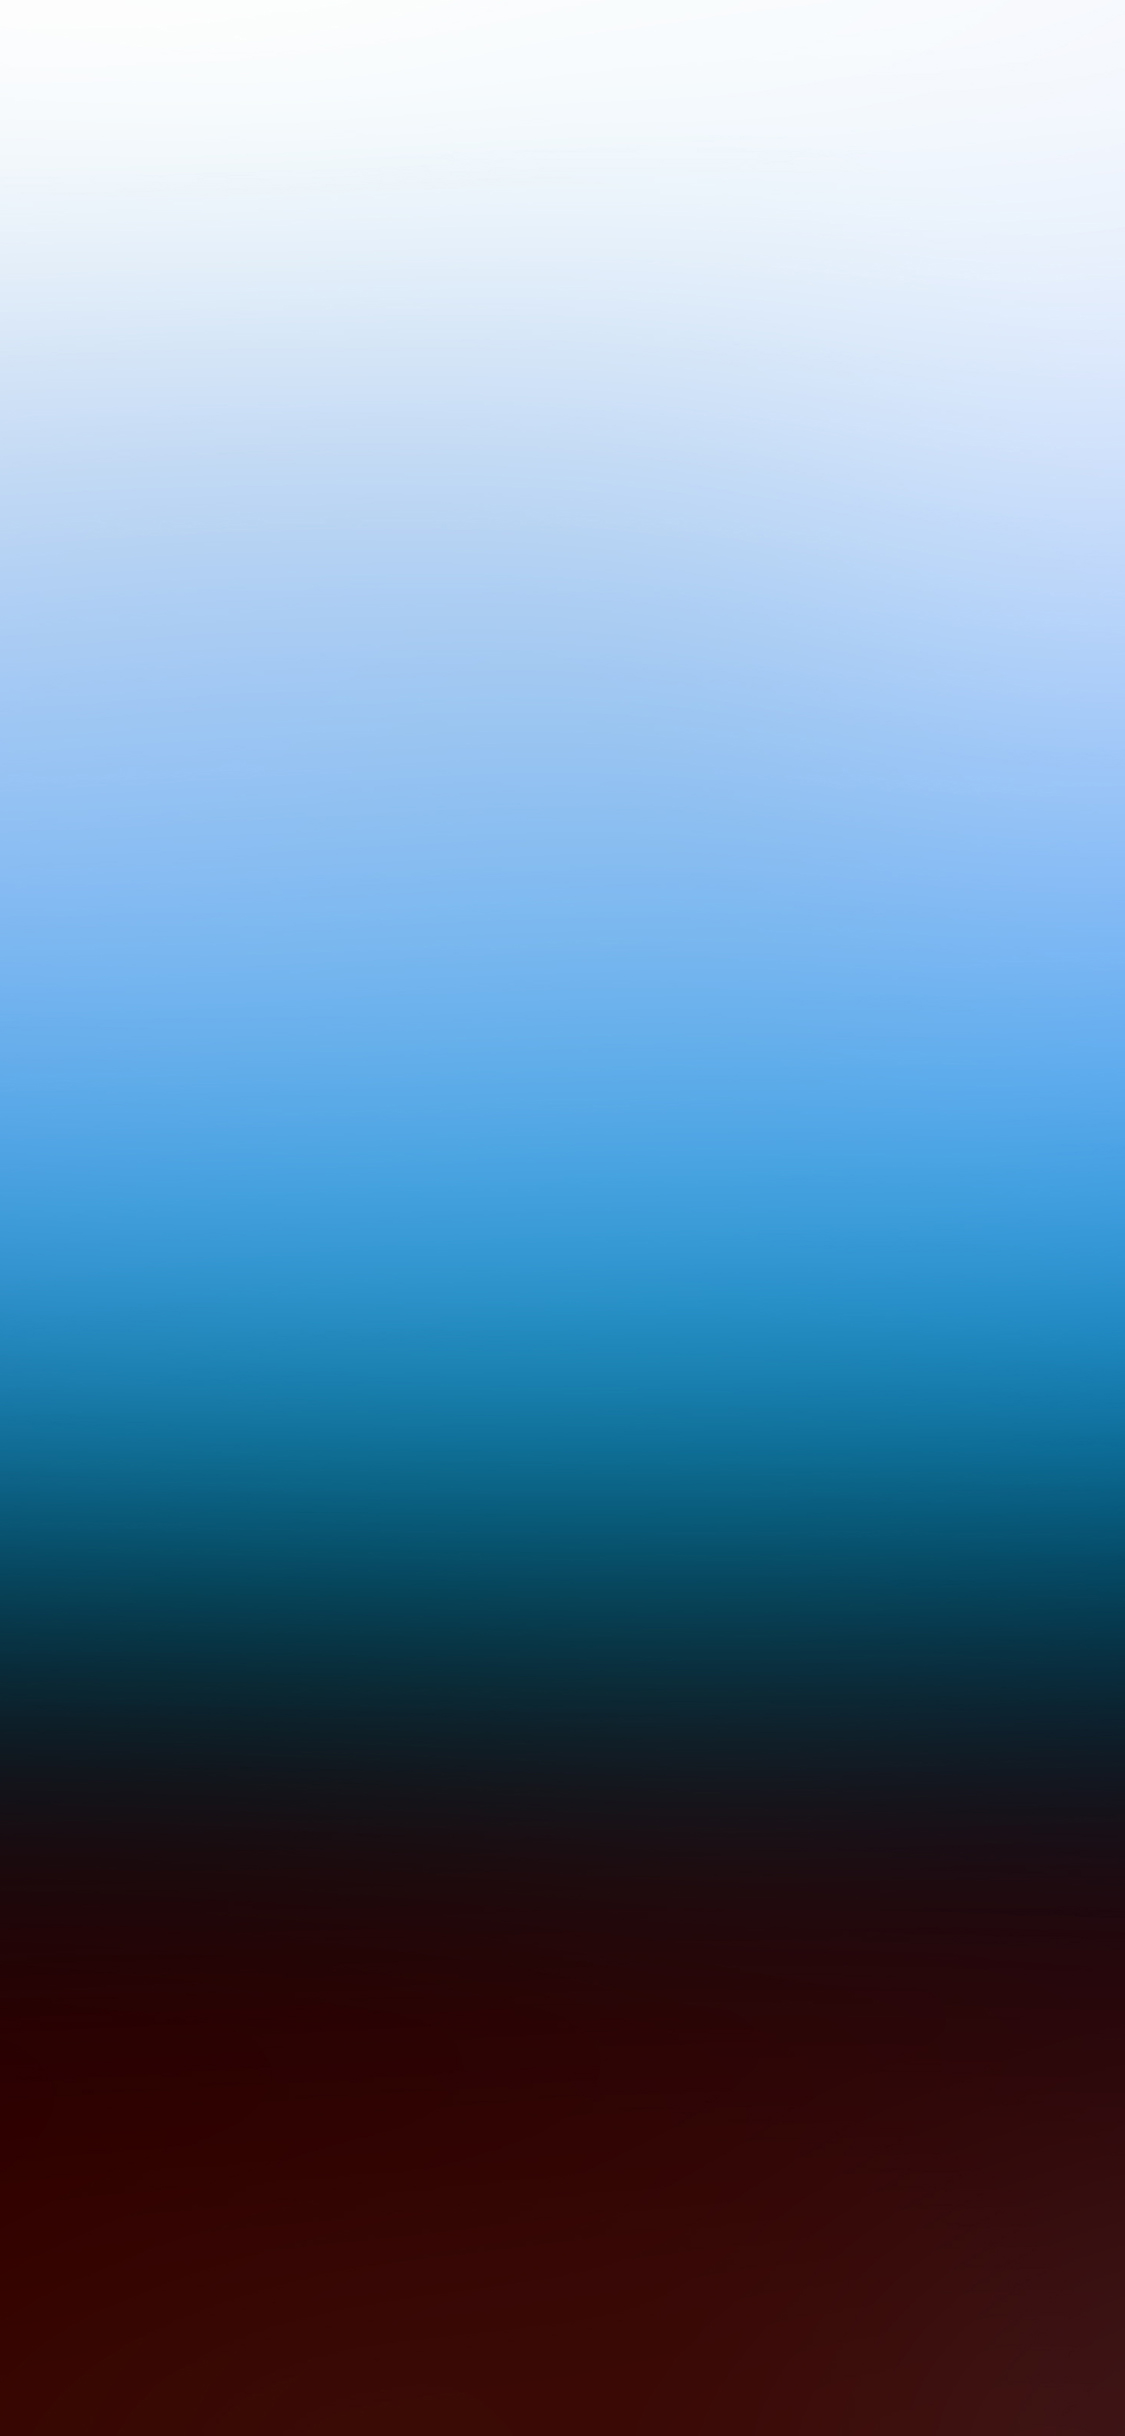 iPhoneXpapers.com-Apple-iPhone-wallpaper-sb58-wallpaper-blue-dark-blur